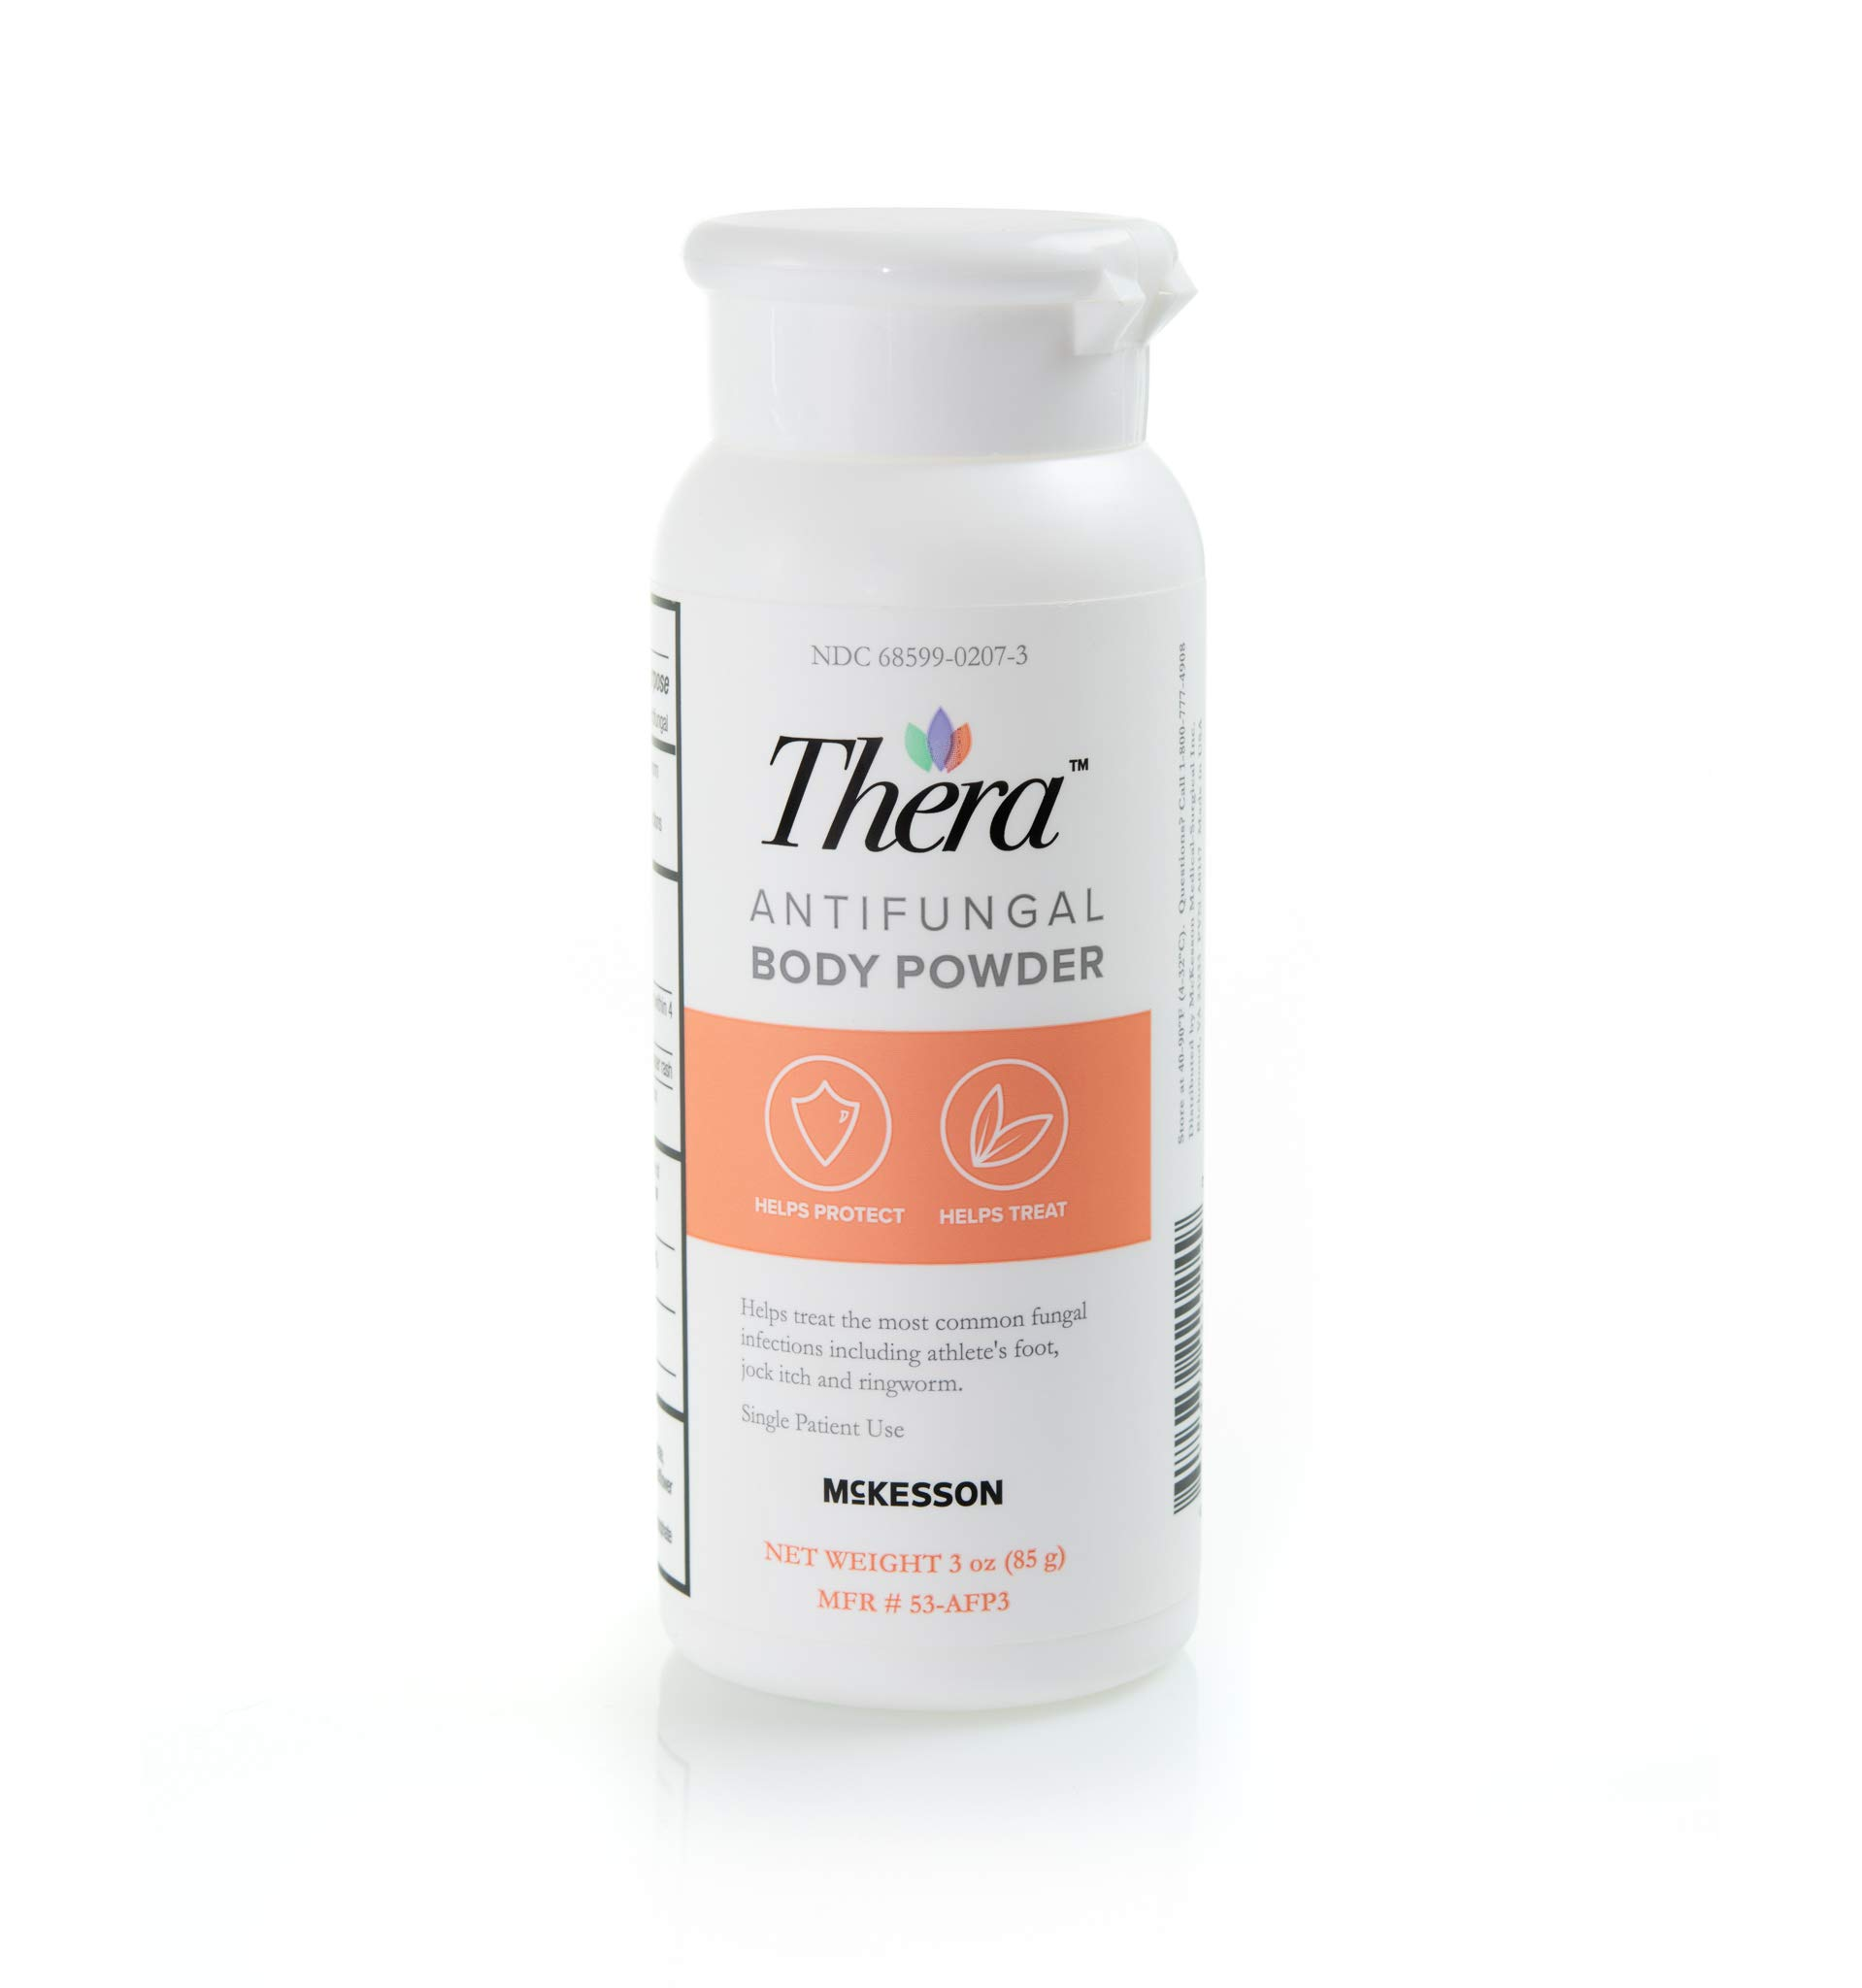 Thera Antifungal Body Powder, Relieves and Prevents Skin Irritation Caused by fungus and Skin Infections - Formulated with Miconazole Nitrate 3 oz